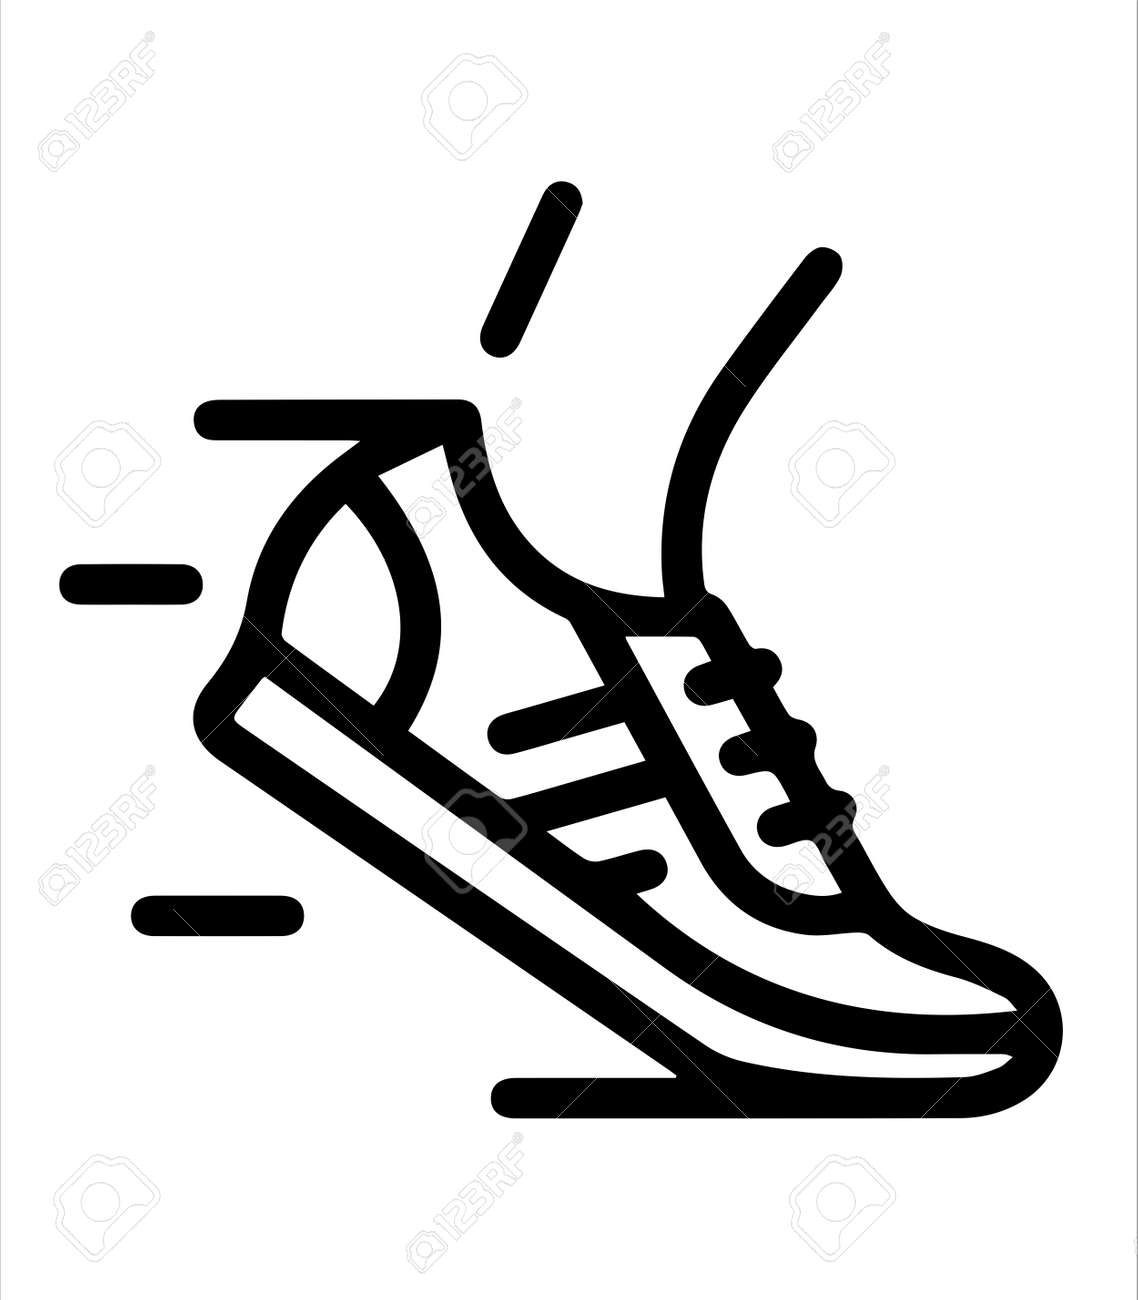 the running icon and shoes - 166507843